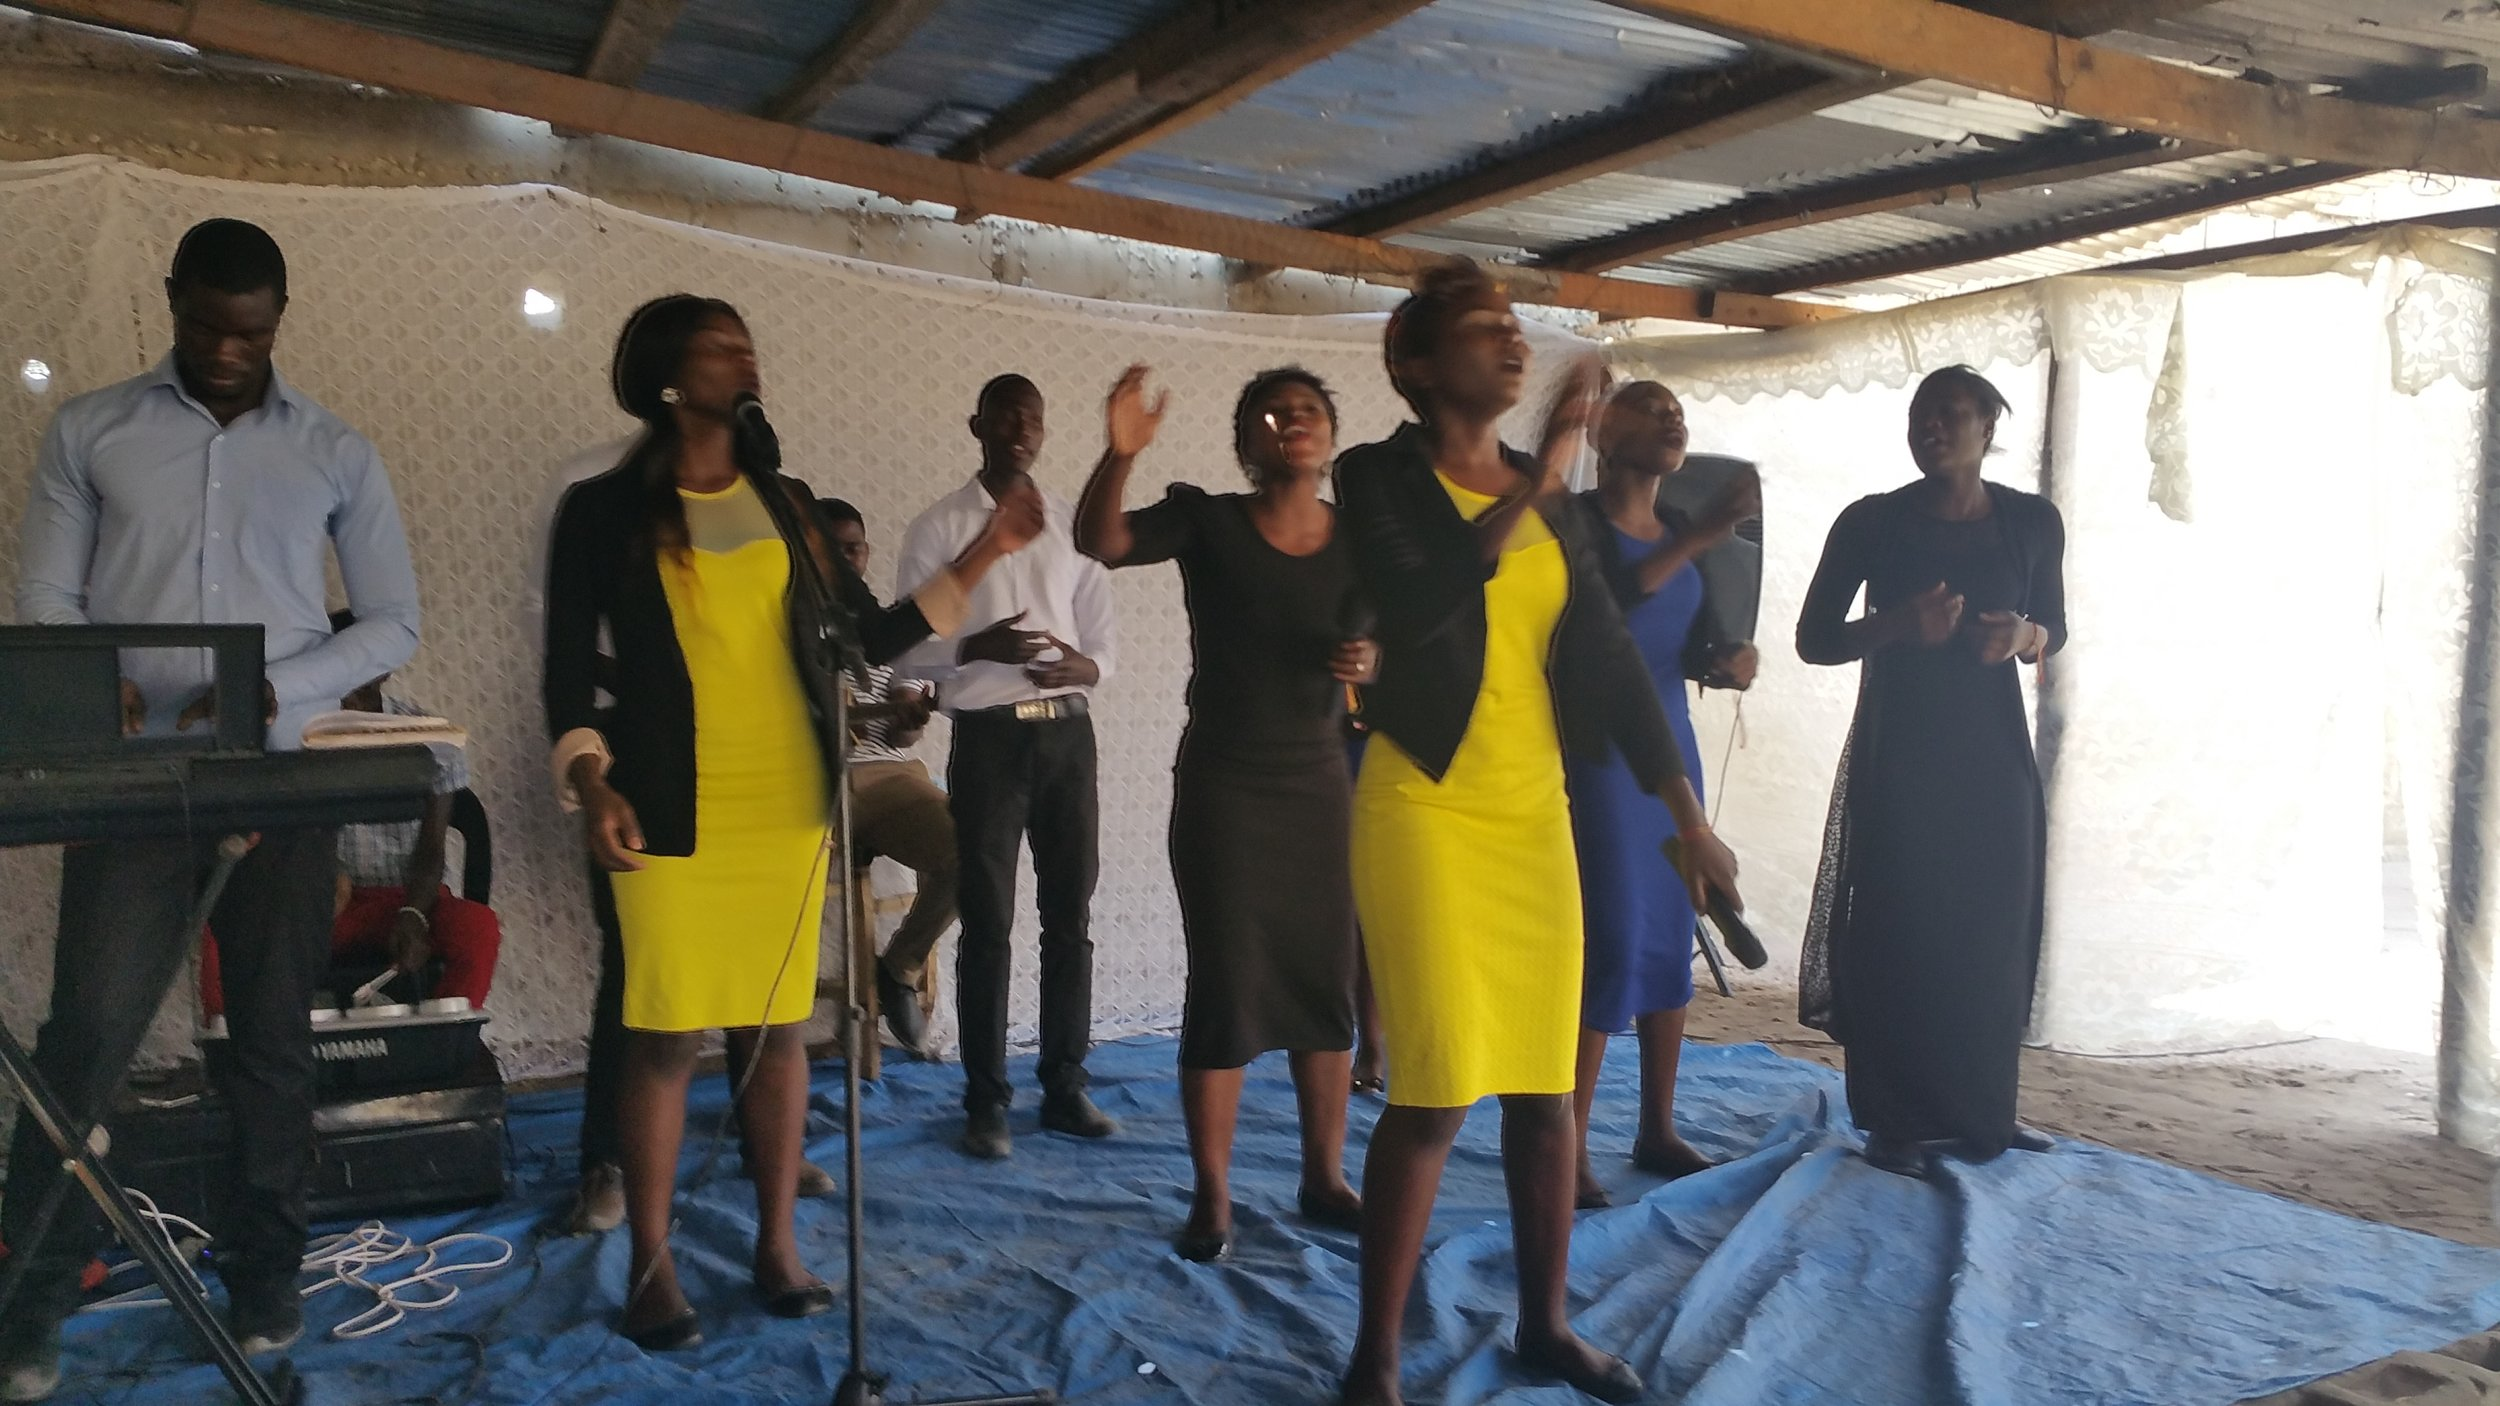 We enjoyed worshipping at the Vineyard Church in Mongu where Doug was privileged to preach and Percy taught. Five of these praise team leaders were in our class!